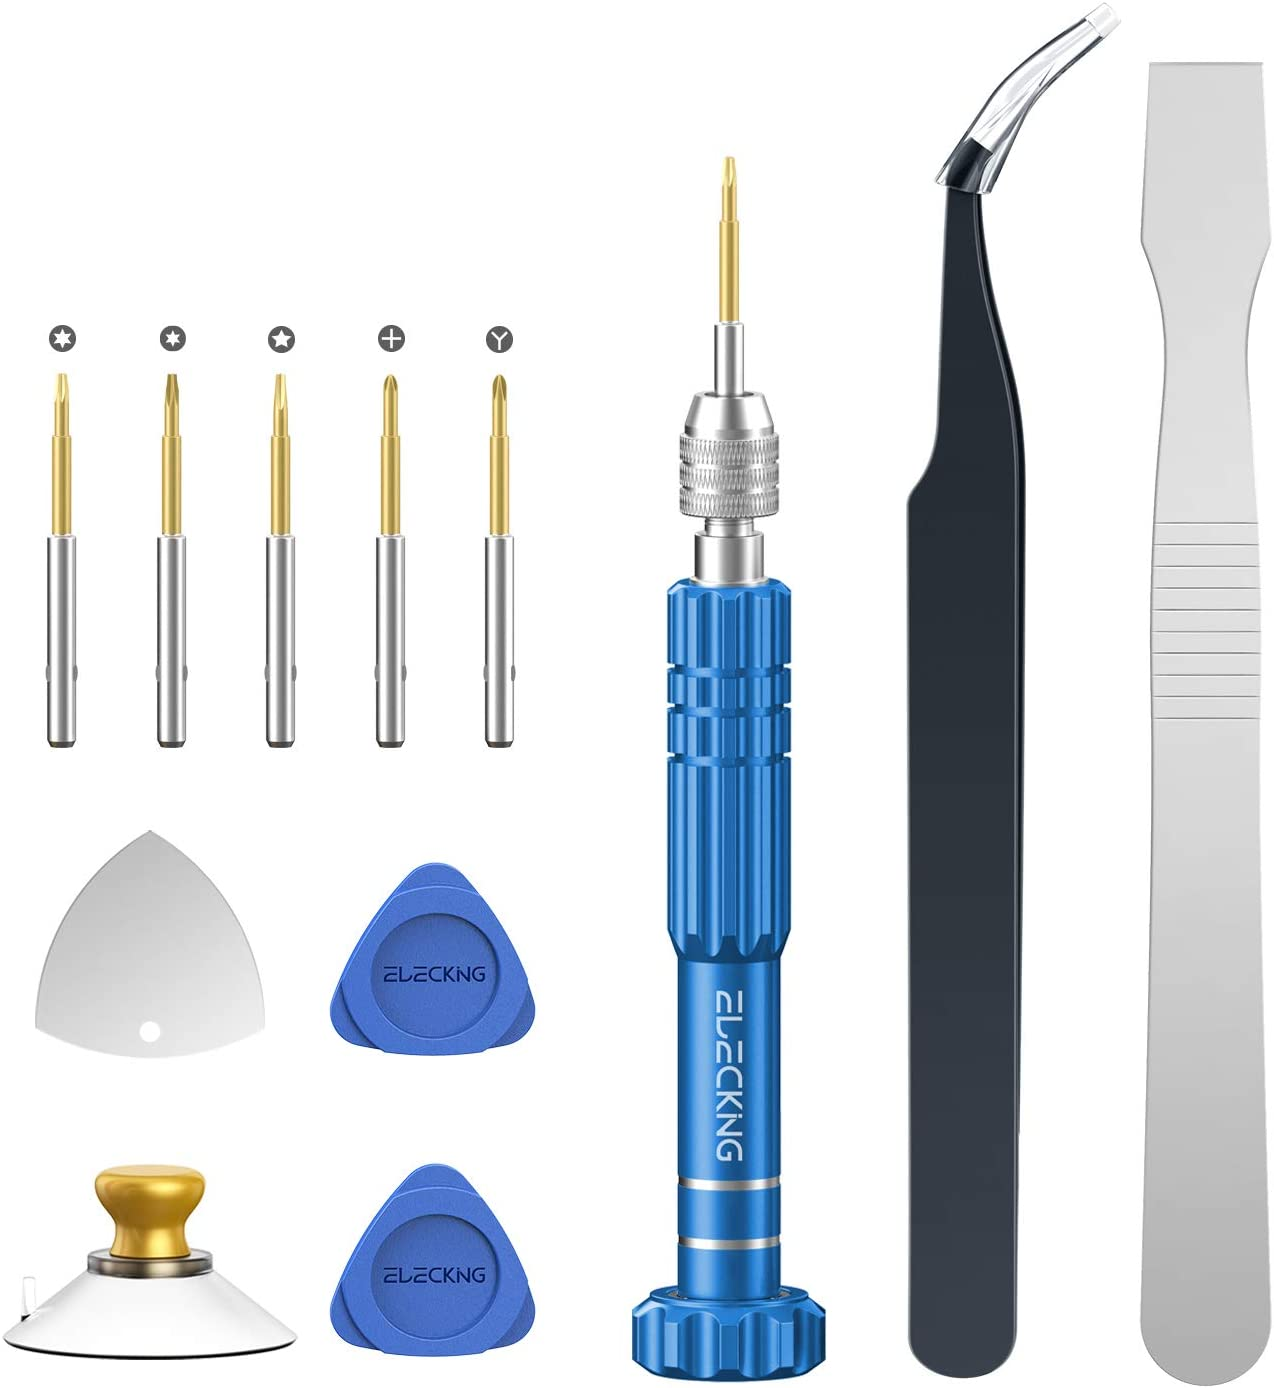 ELECKING 5 in 1 Multifunctional Precision Screwdriver, Repair Tool Kit with Phillips, Pentalobe, Tri-Point, Torx Magnetic Screwdriver Kit for iPhone, iPad, Electronics, Laptop, Tablet and Eyeglass